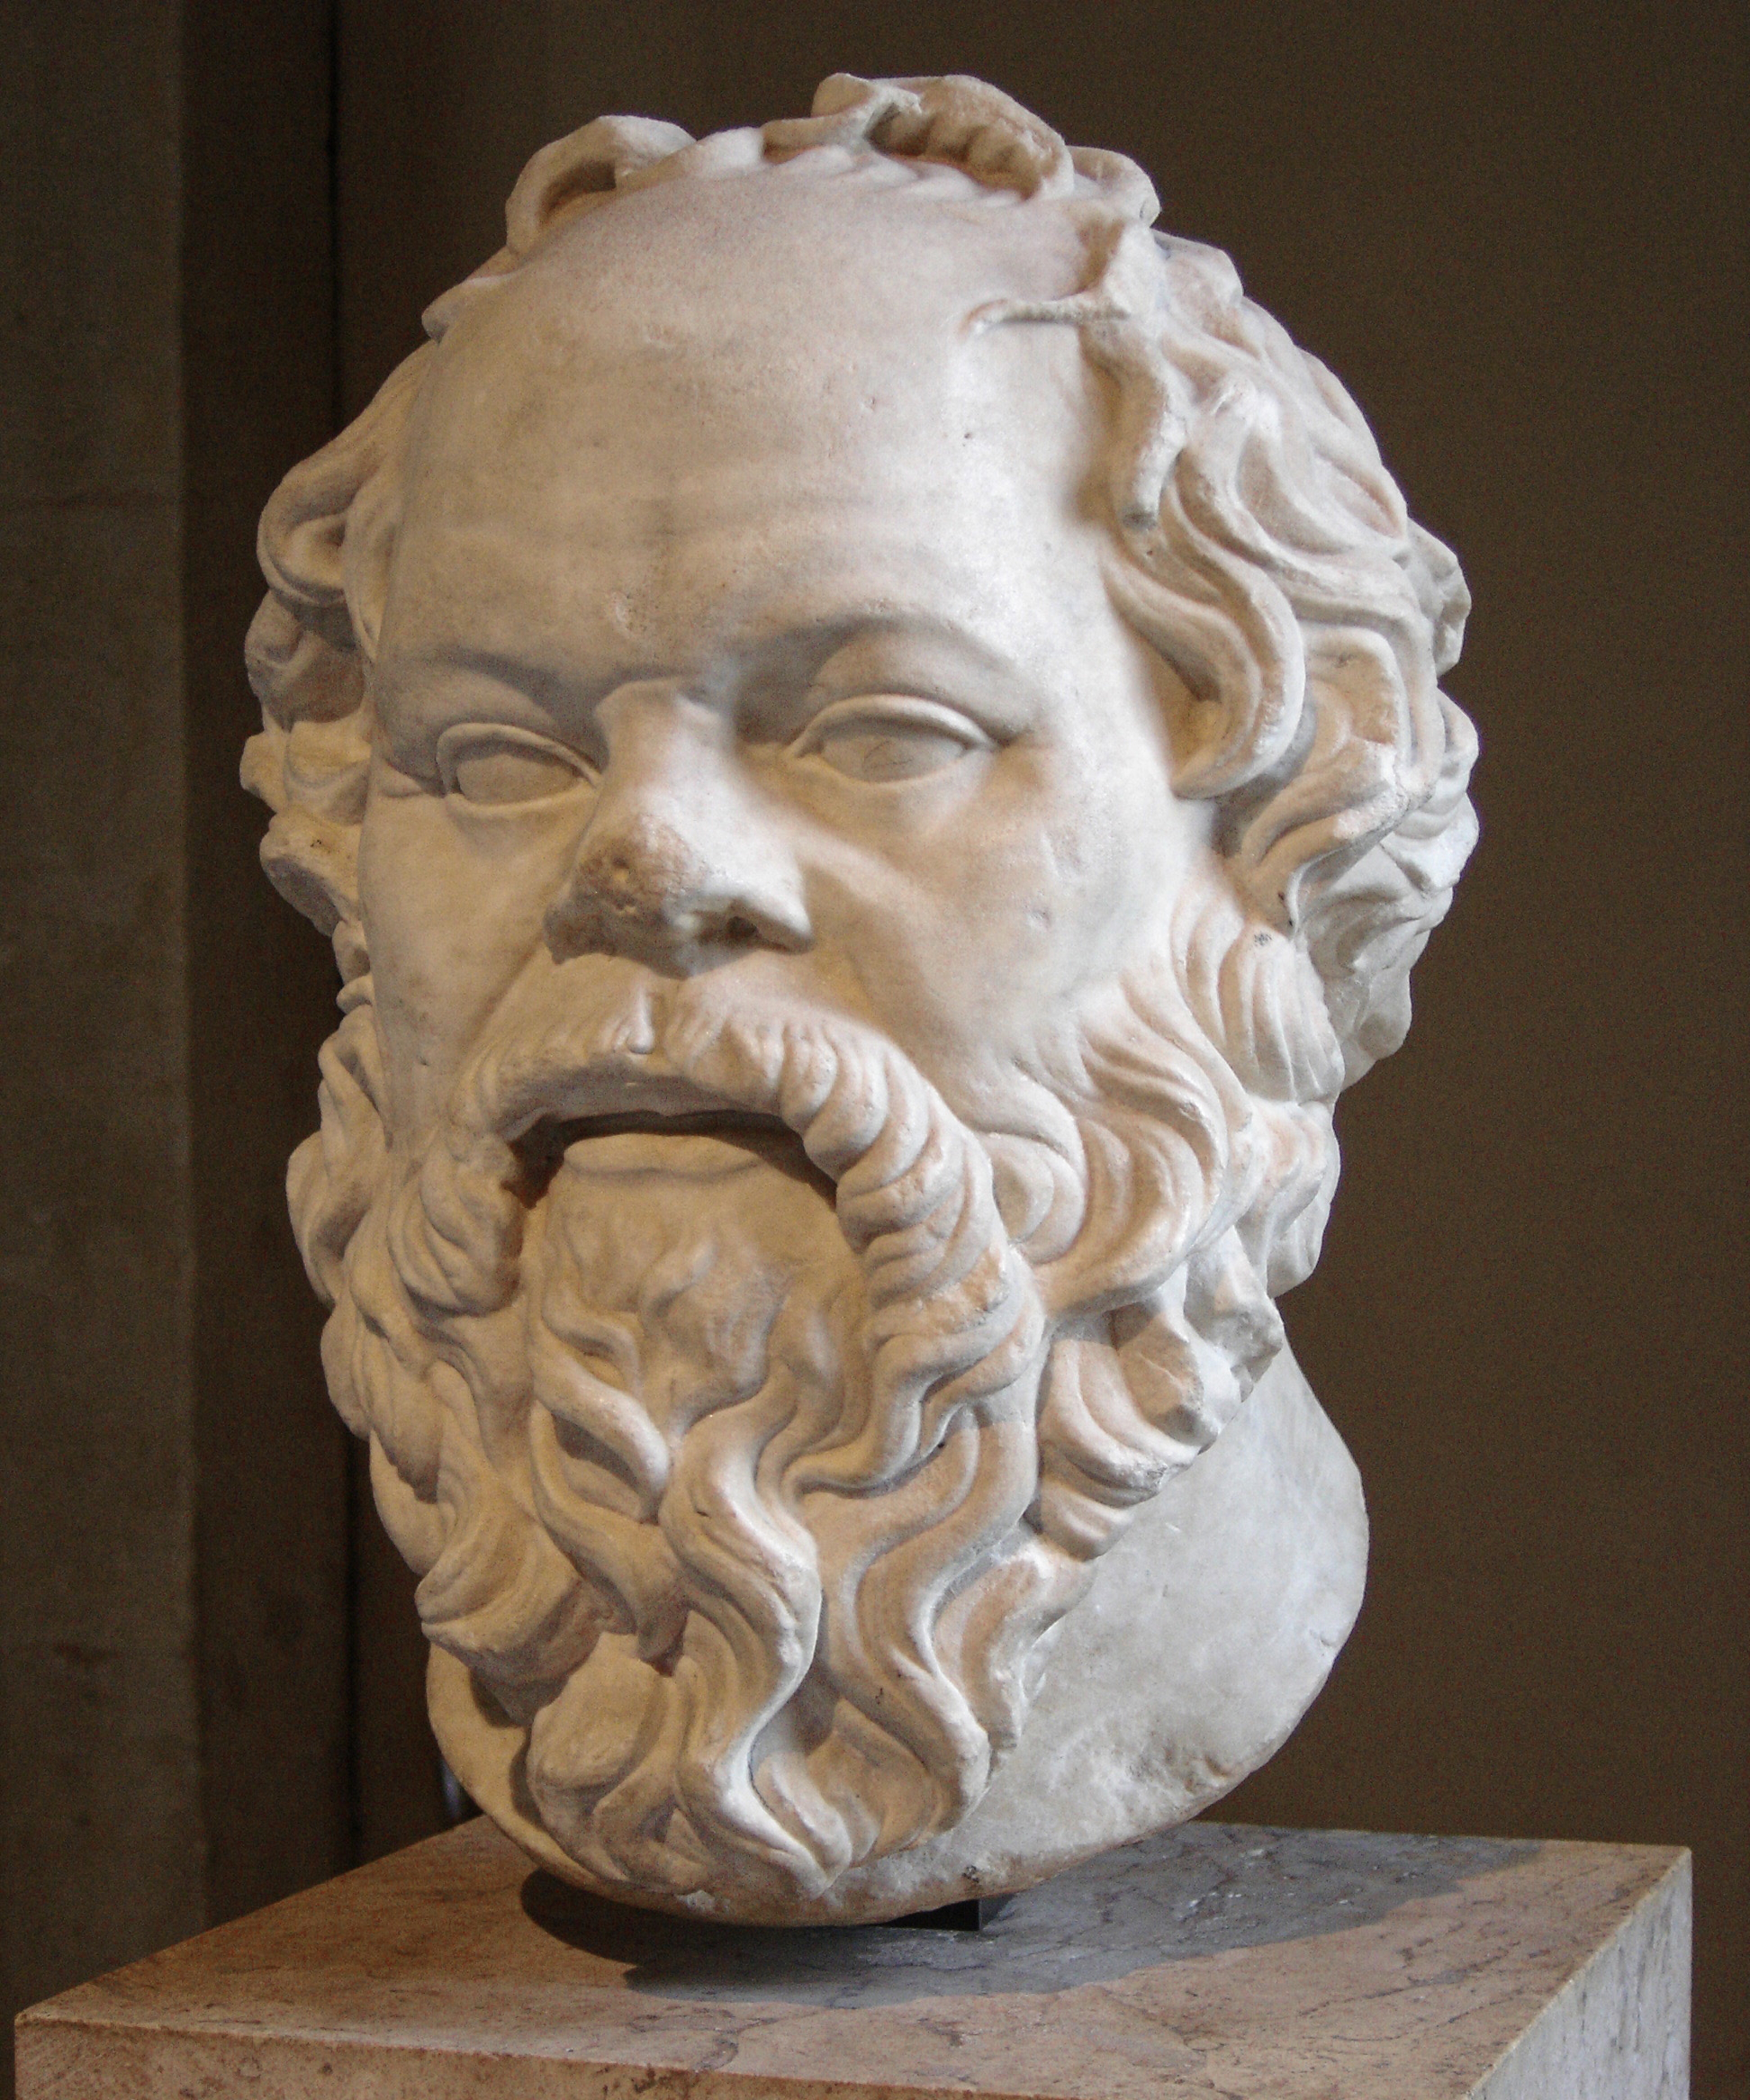 Socrates bust in the Louvre